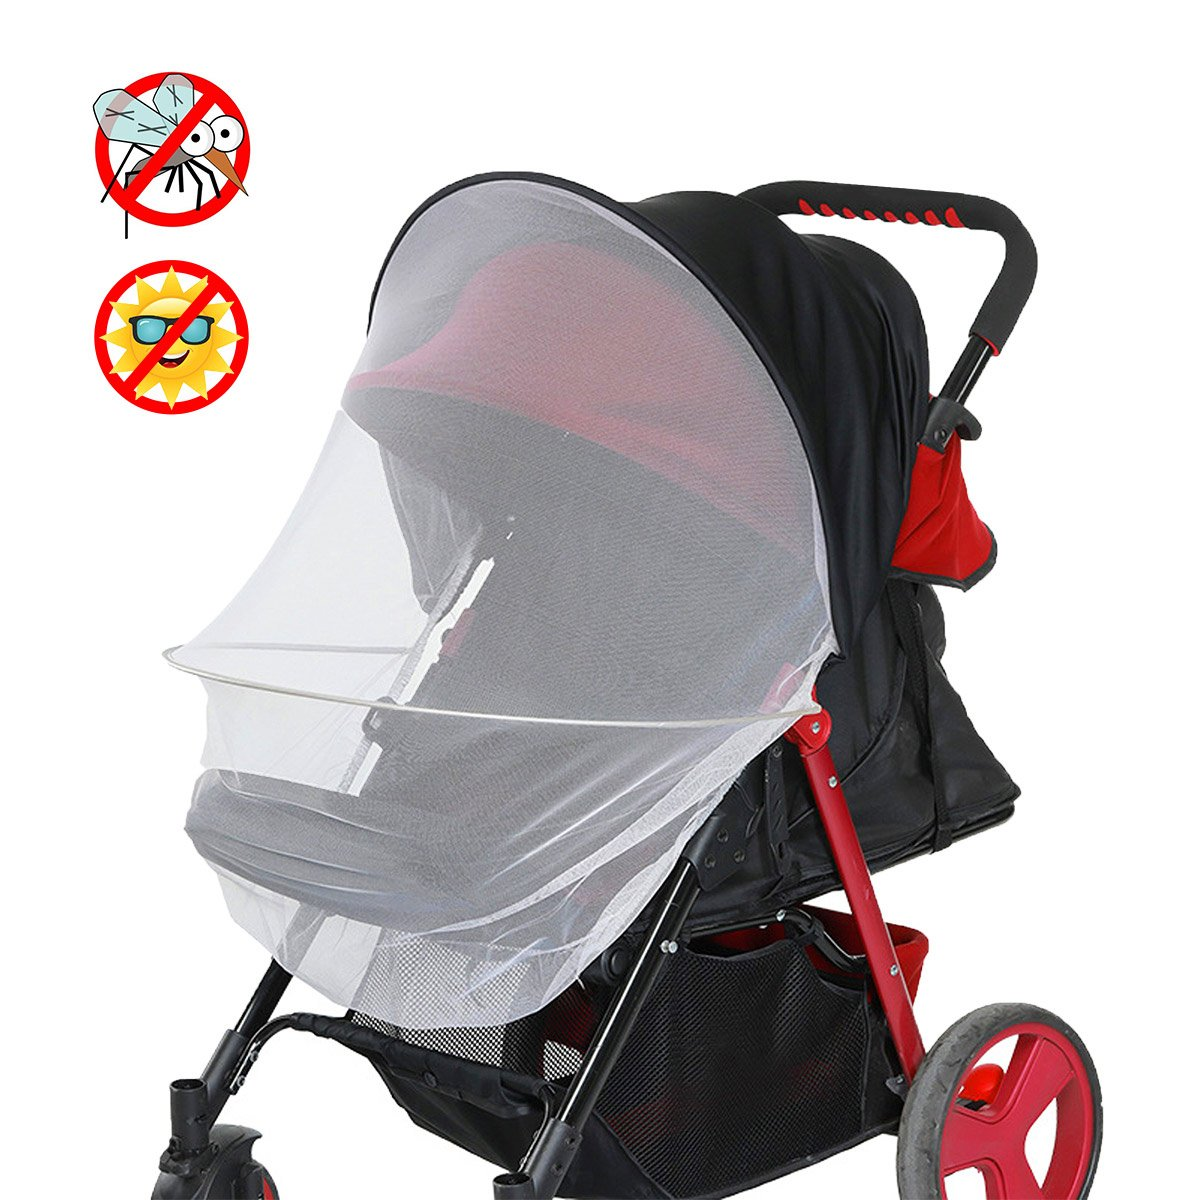 Dreamsoule 2-in-1 Baby Stroller Sun Shade Cover & Mosquito Net, Universal Infant Stroller Canopy, Protect Baby from Ultraviolet Ray/Dust/Bug, Fit for All Seasons